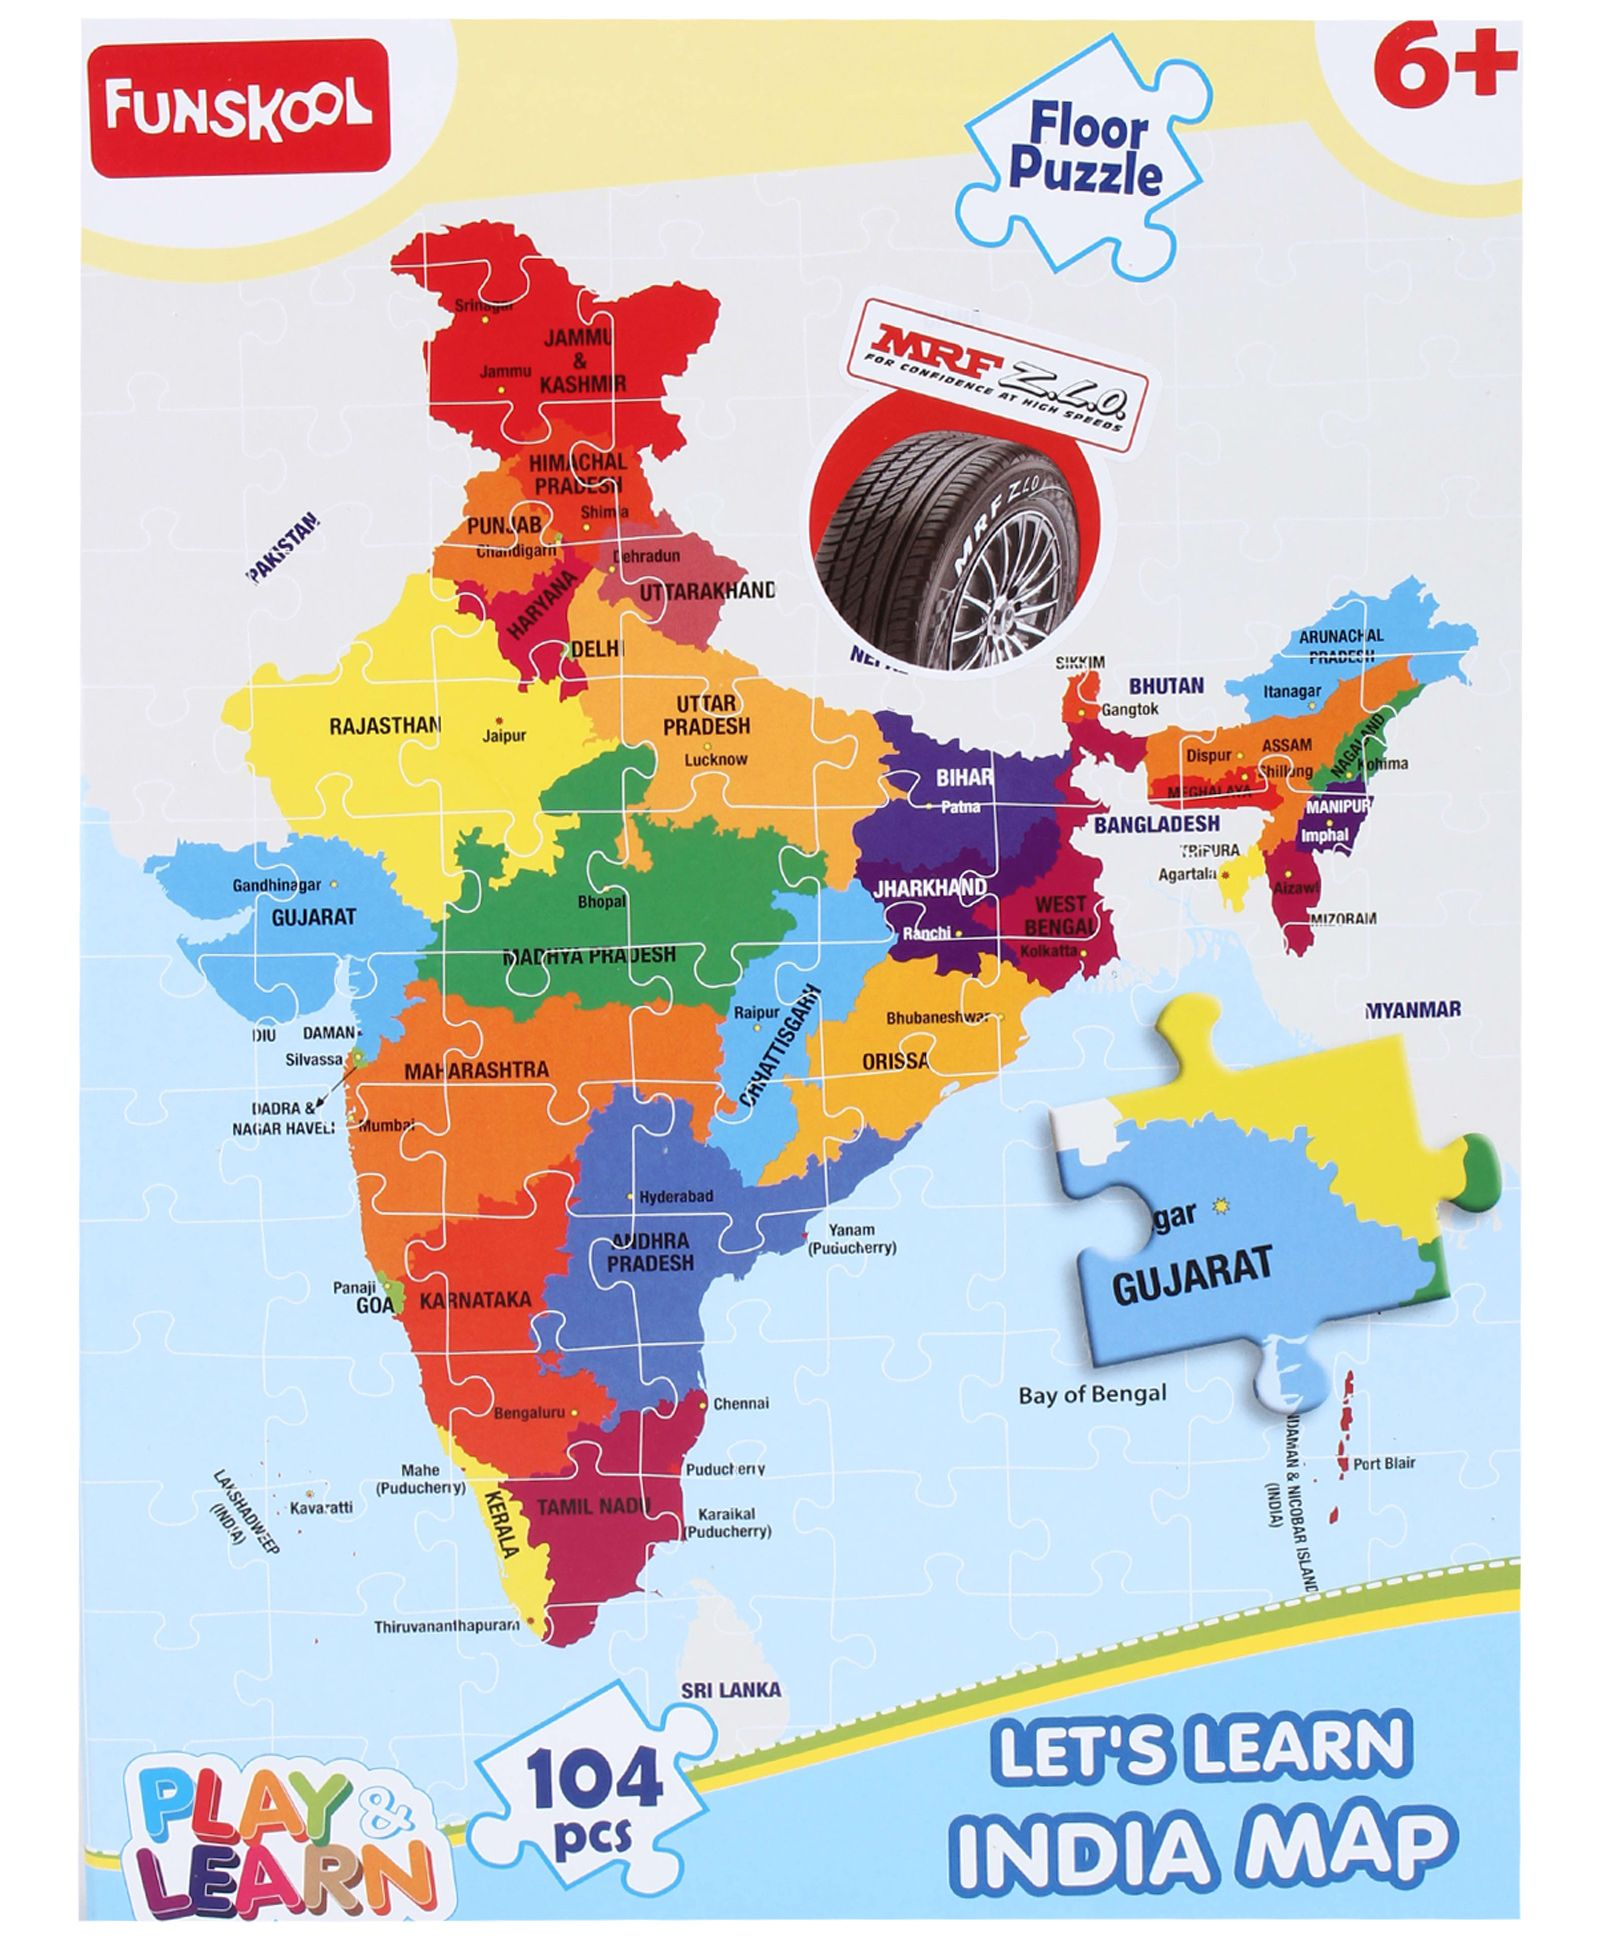 Funskool learn india map puzzle 104 pieces product image gumiabroncs Images